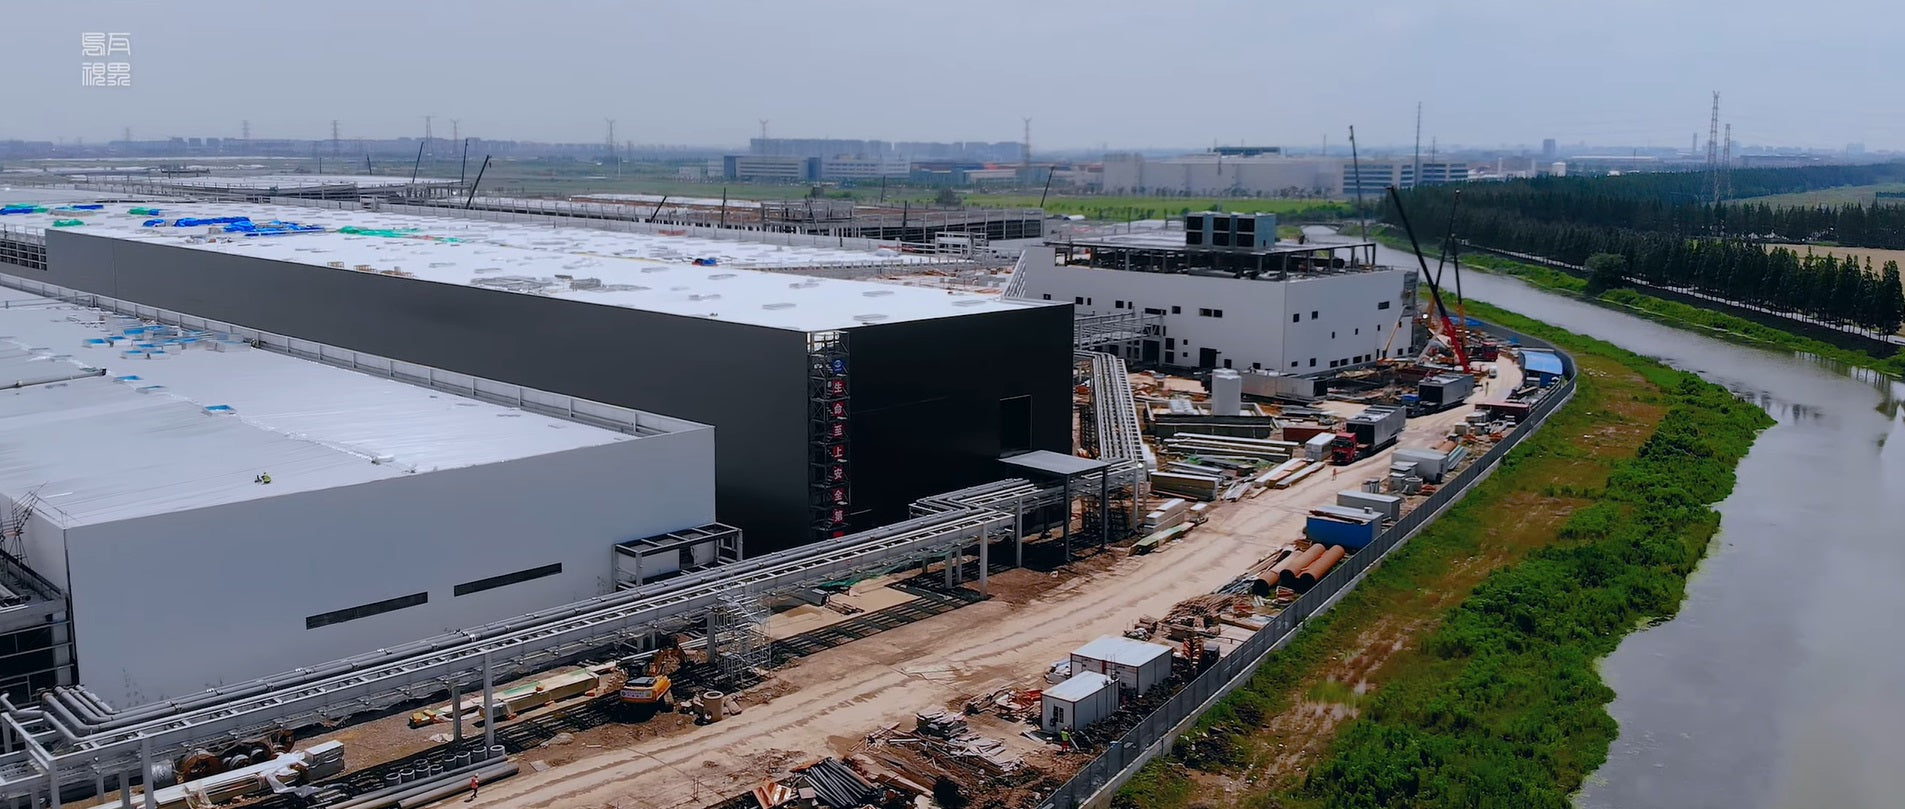 Tesla Giga Shanghai Almost Completes Phase 2 Building for Model Y Production